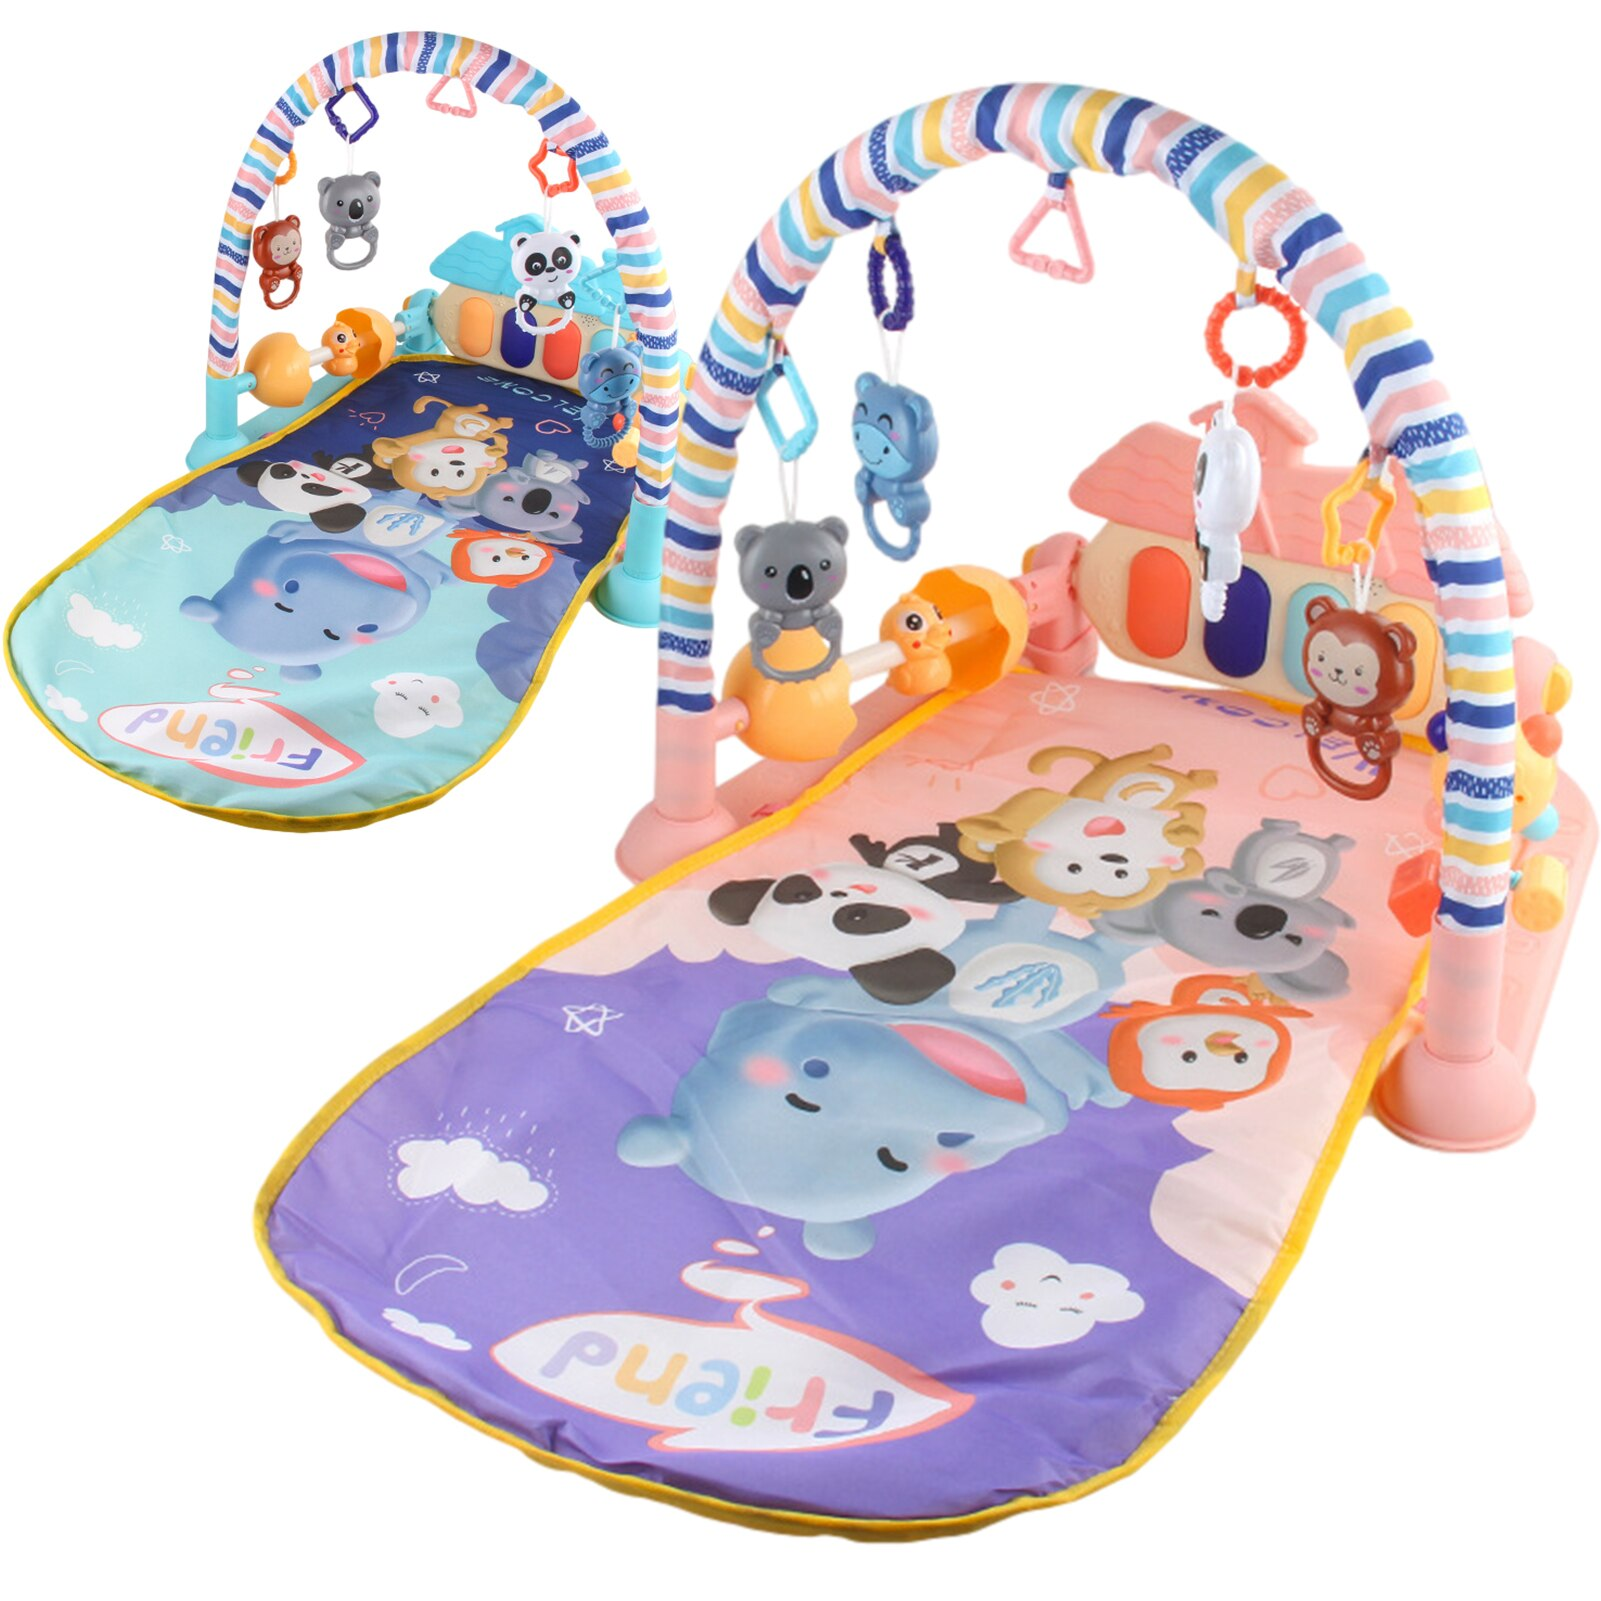 infant baby flying chess waterproof play mat early learning toy fitness bodybuilding frame crawling mat kick play lay sit toy Baby Toy Fitness Frame Upgrade Double Side Protection Fence Baby Play Mat Activity Gym Kick Piano Keyboard Baby Jungle Mat